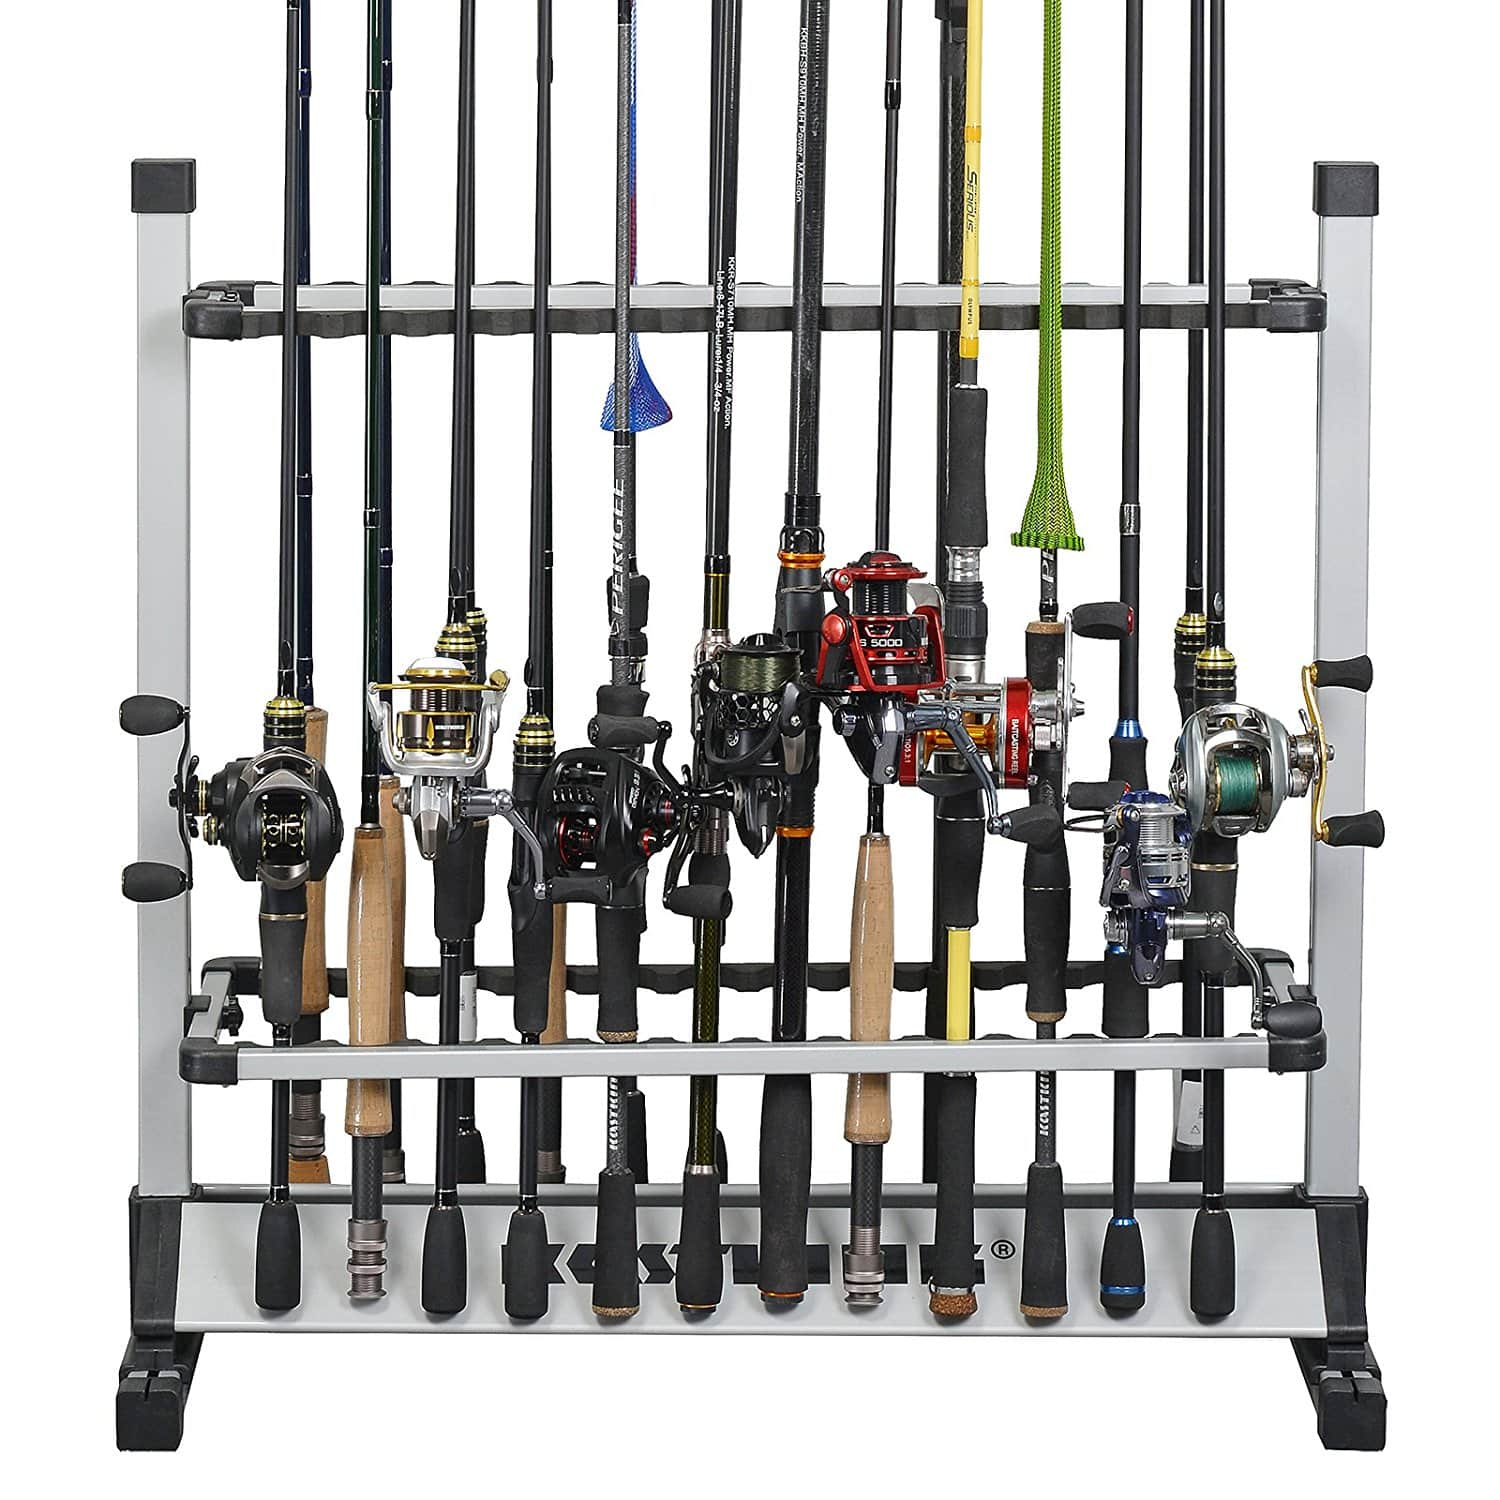 $41.98 24 Rod Rack for All Types of Fishing Rods and Combos/12 Rod Rack for Freshwater